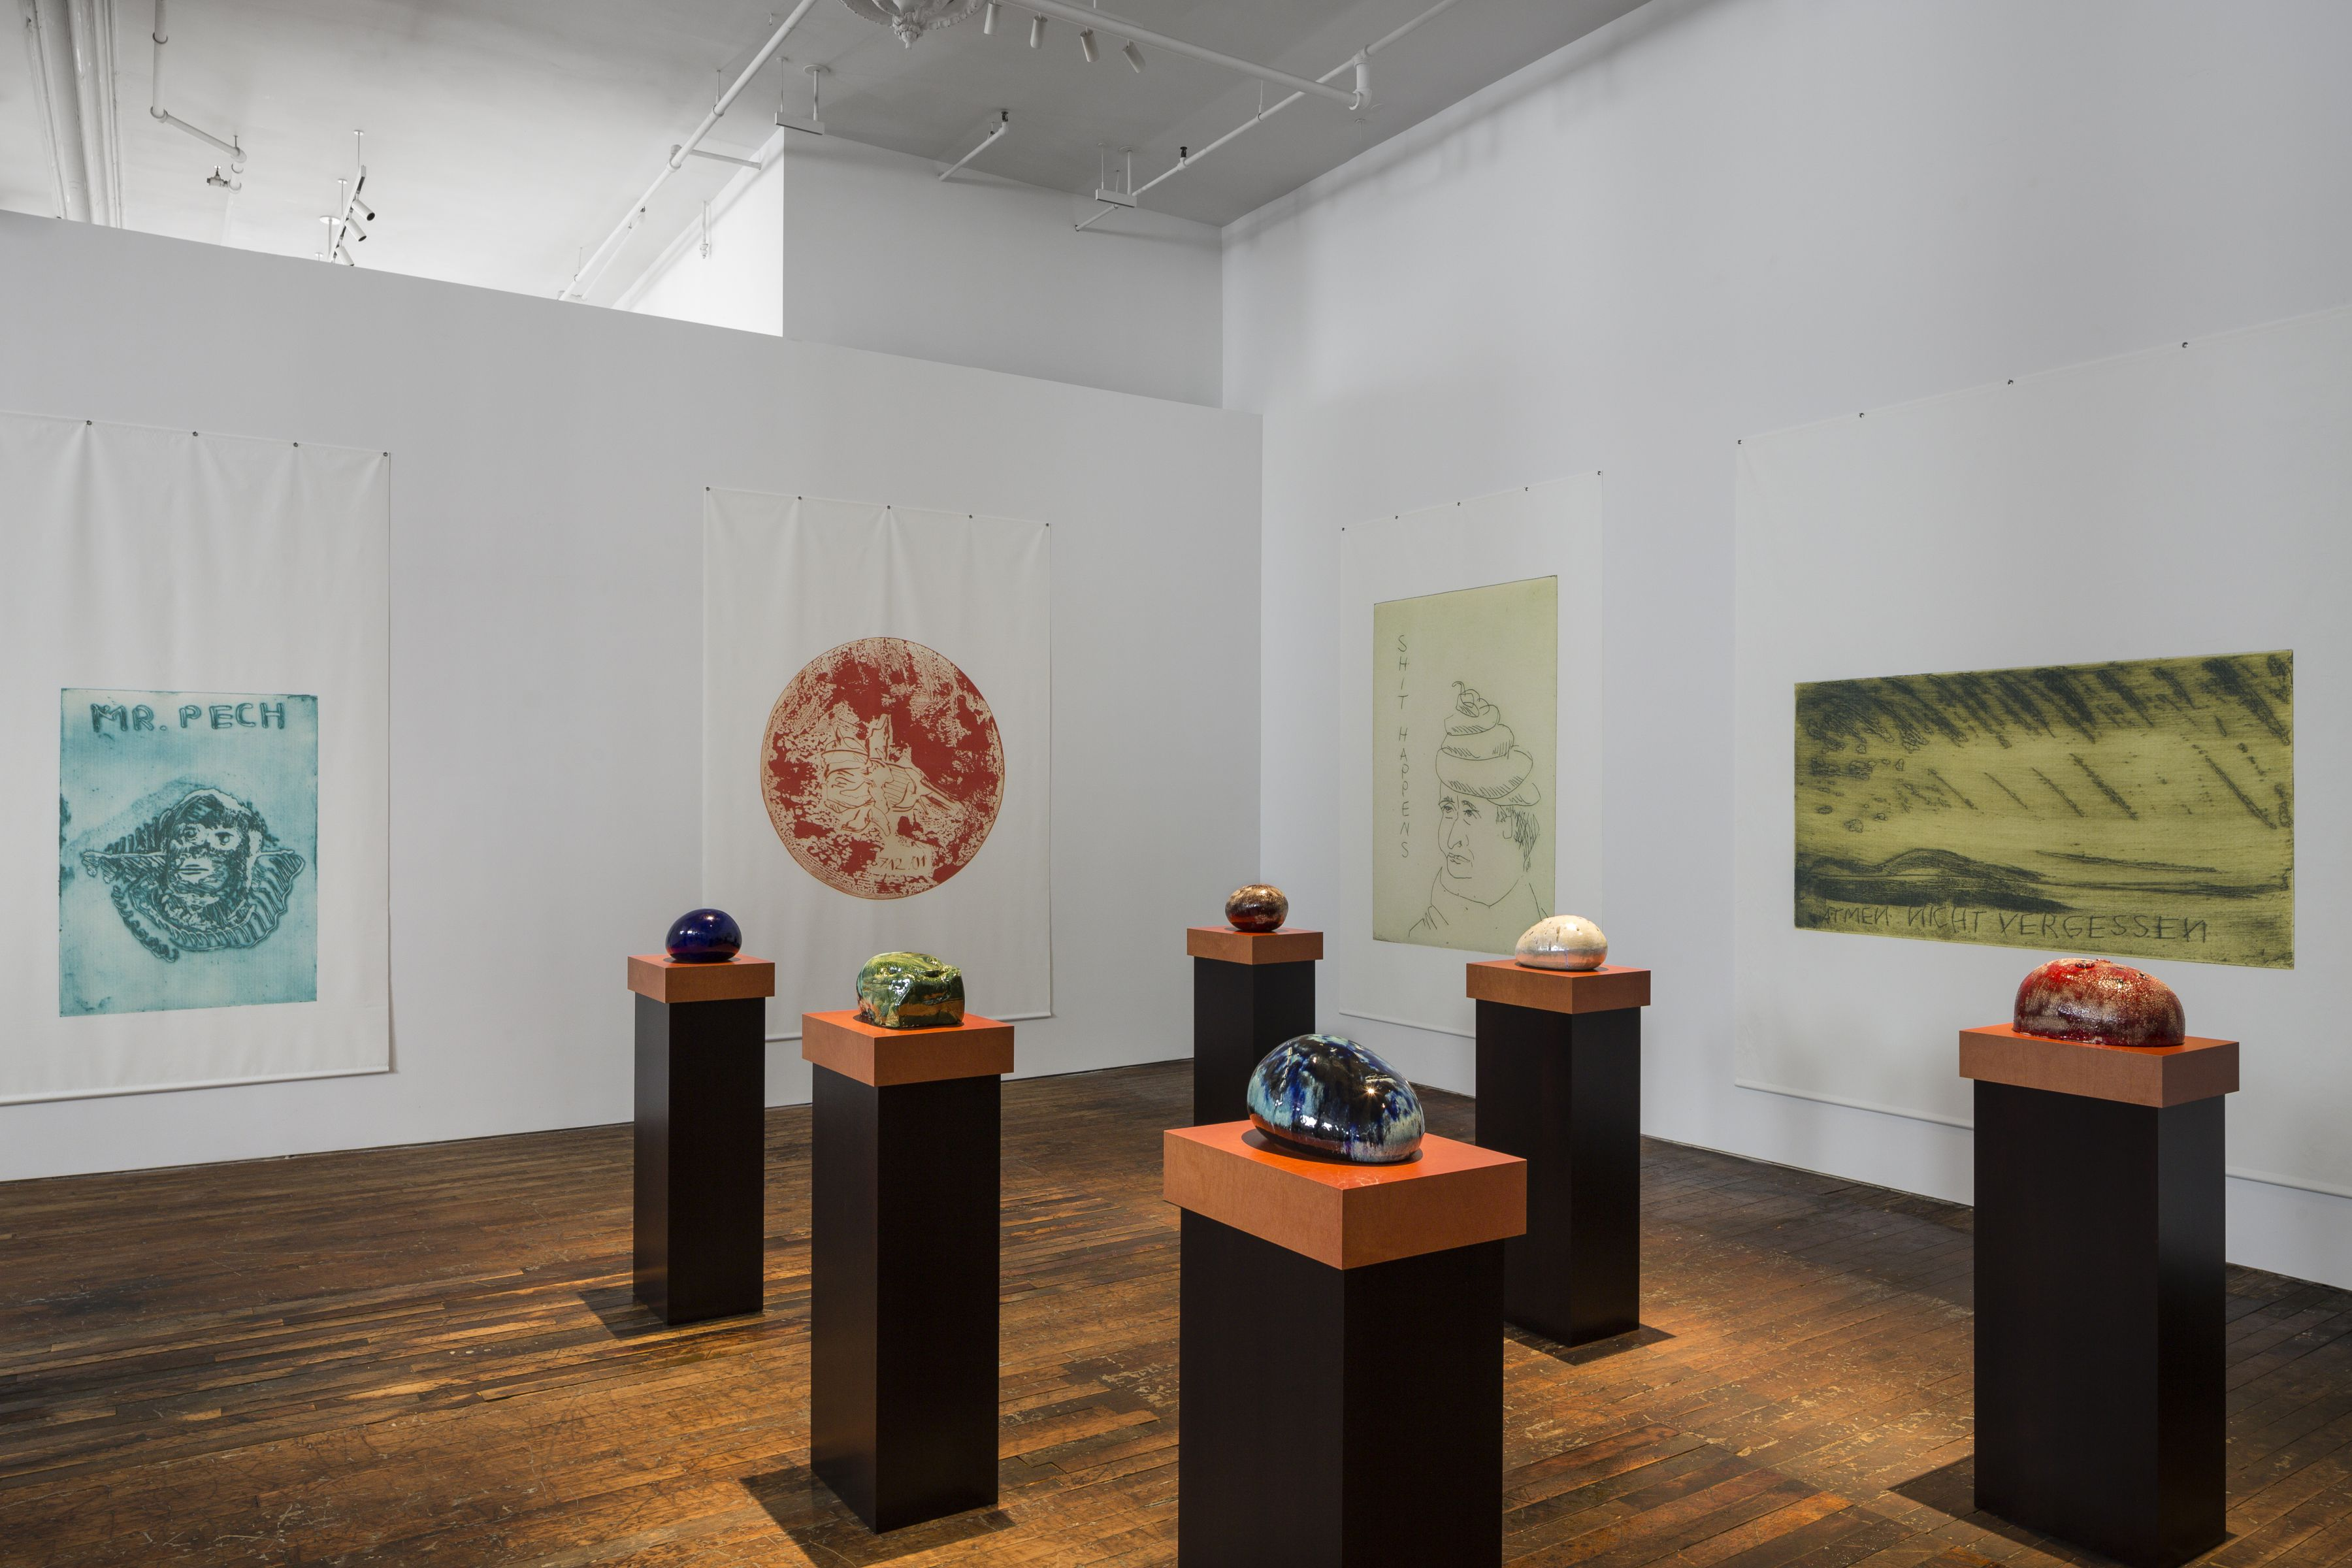 Thomas Schütte – installation view 16